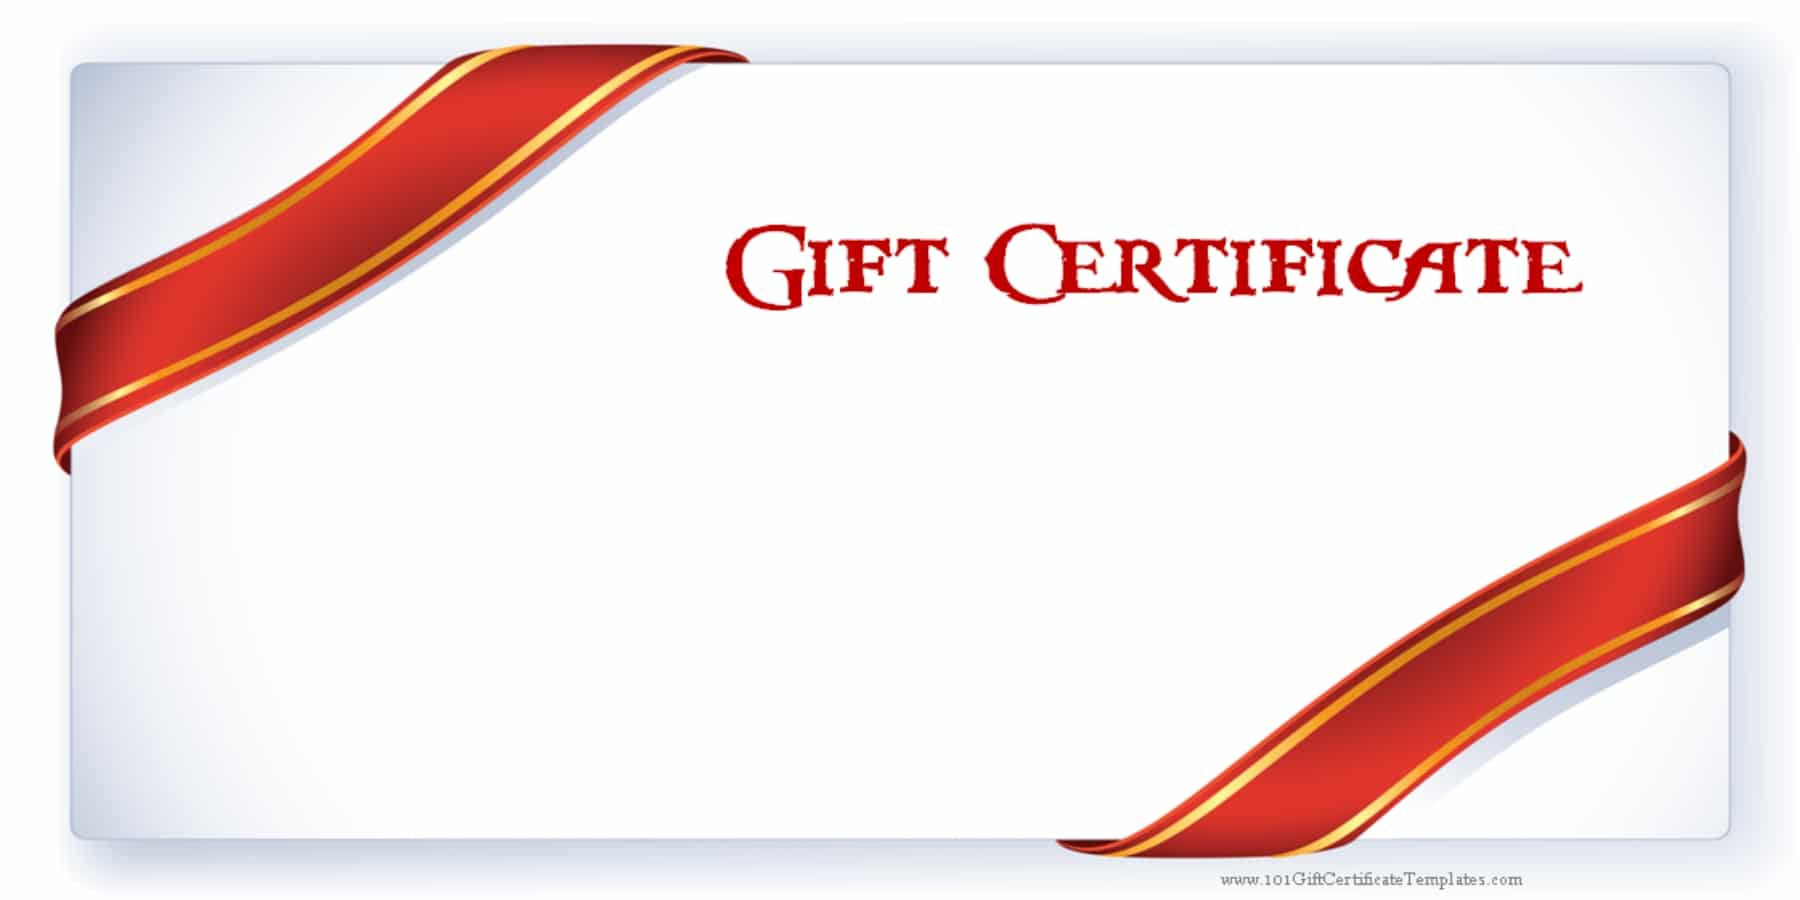 Printable Gift Certificate Templates - Free Printable Gift Certificates